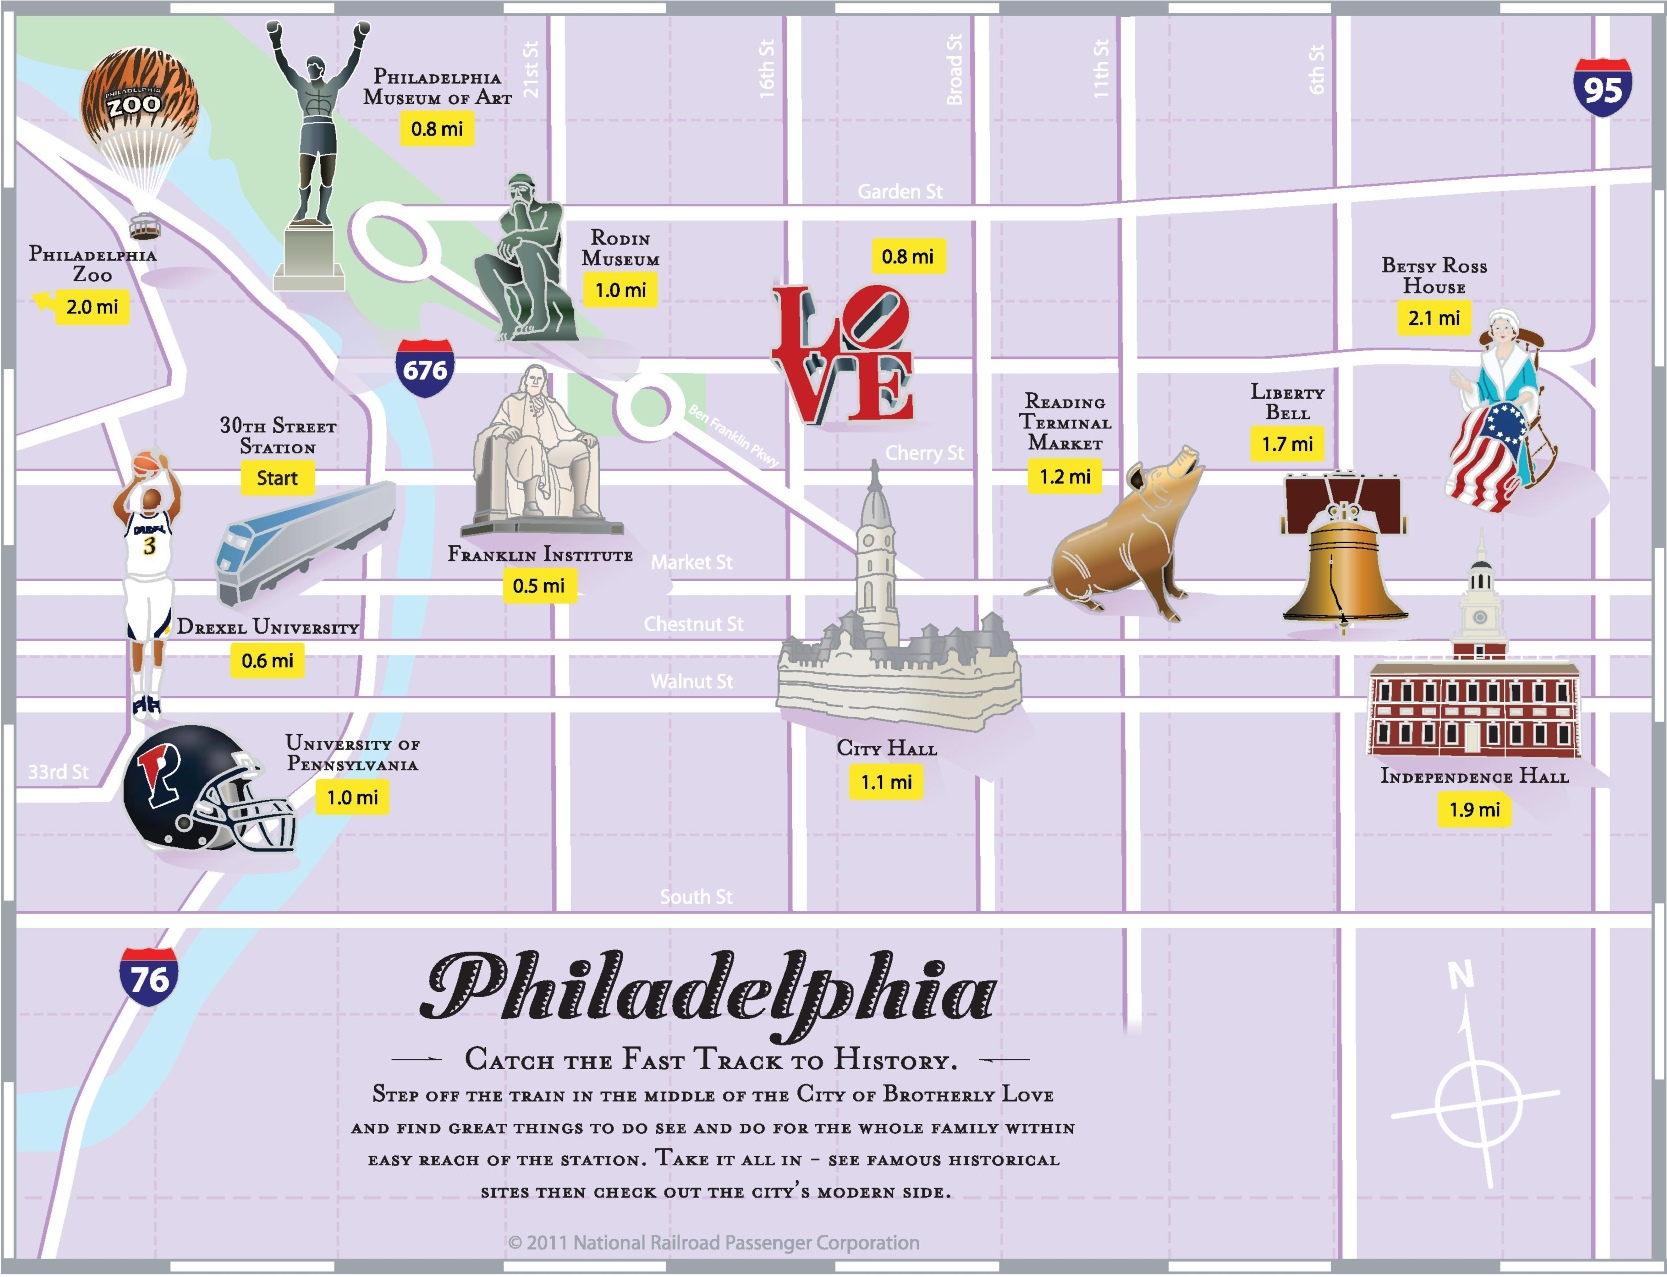 Philadelphia tourist attractions map – Minnesota Tourist Attractions Map